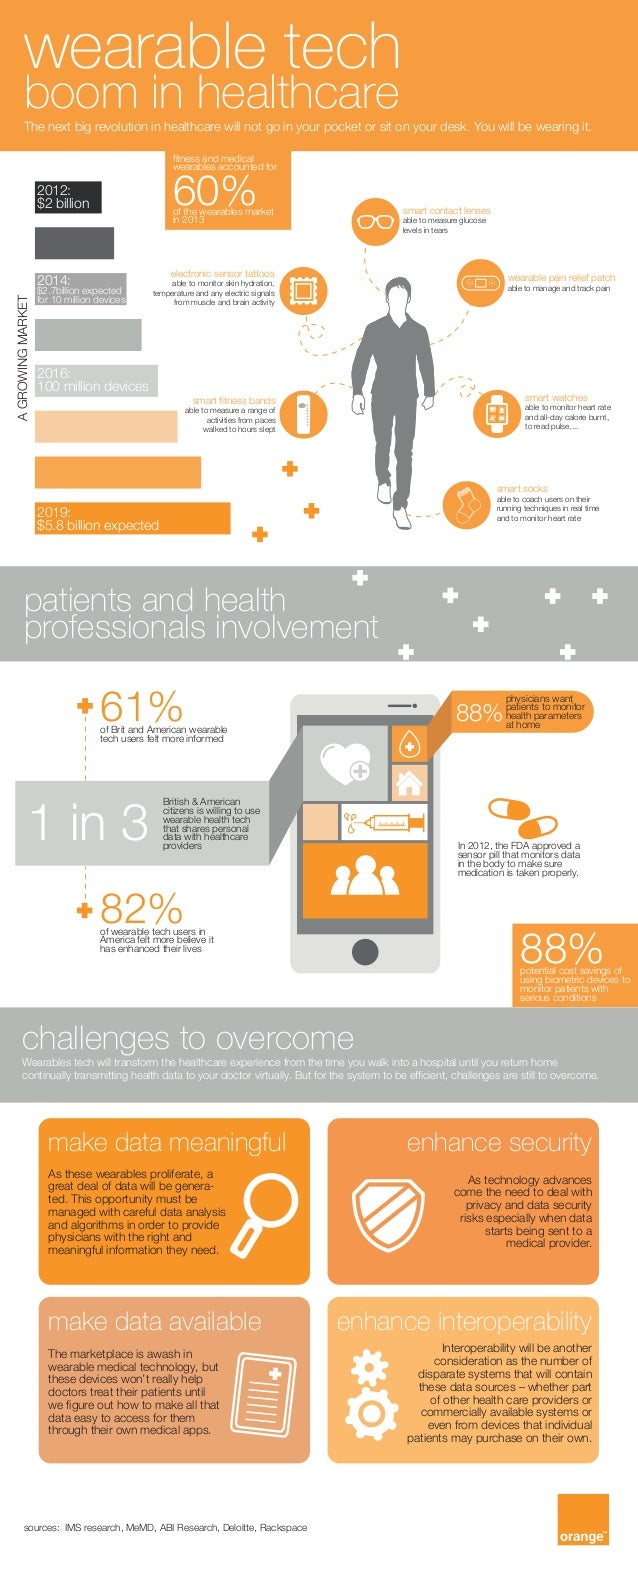 Wearable tech boom in healthcare - infographic